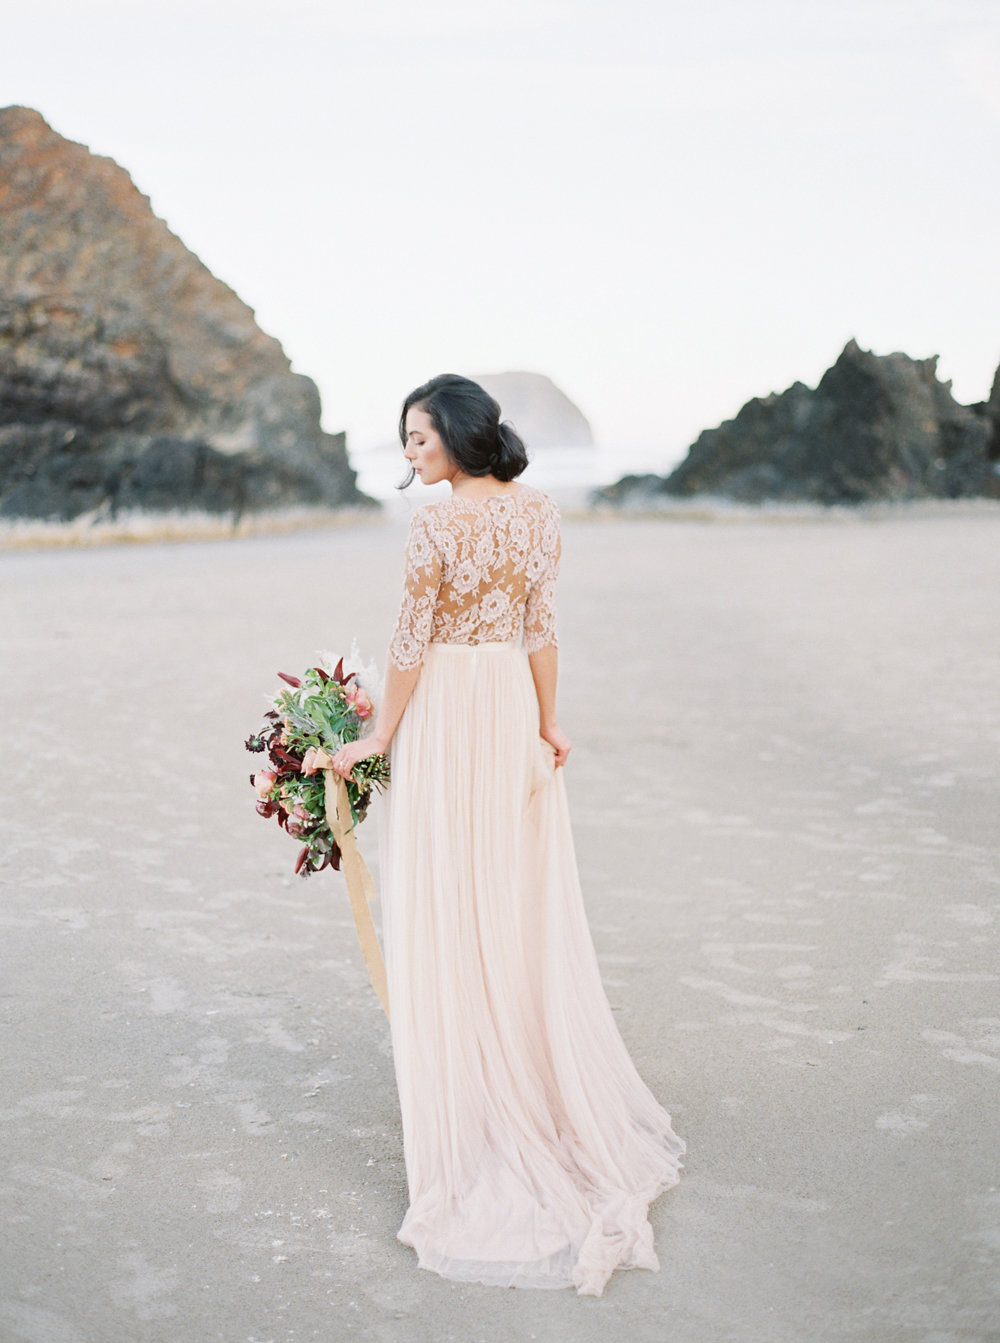 Oregon Coast Wedding | Oregon Wedding | Oregon Wedding Planner | Workshop Design | Workshop Designer | Katie Nicolle Photography | Stacey Foley Design